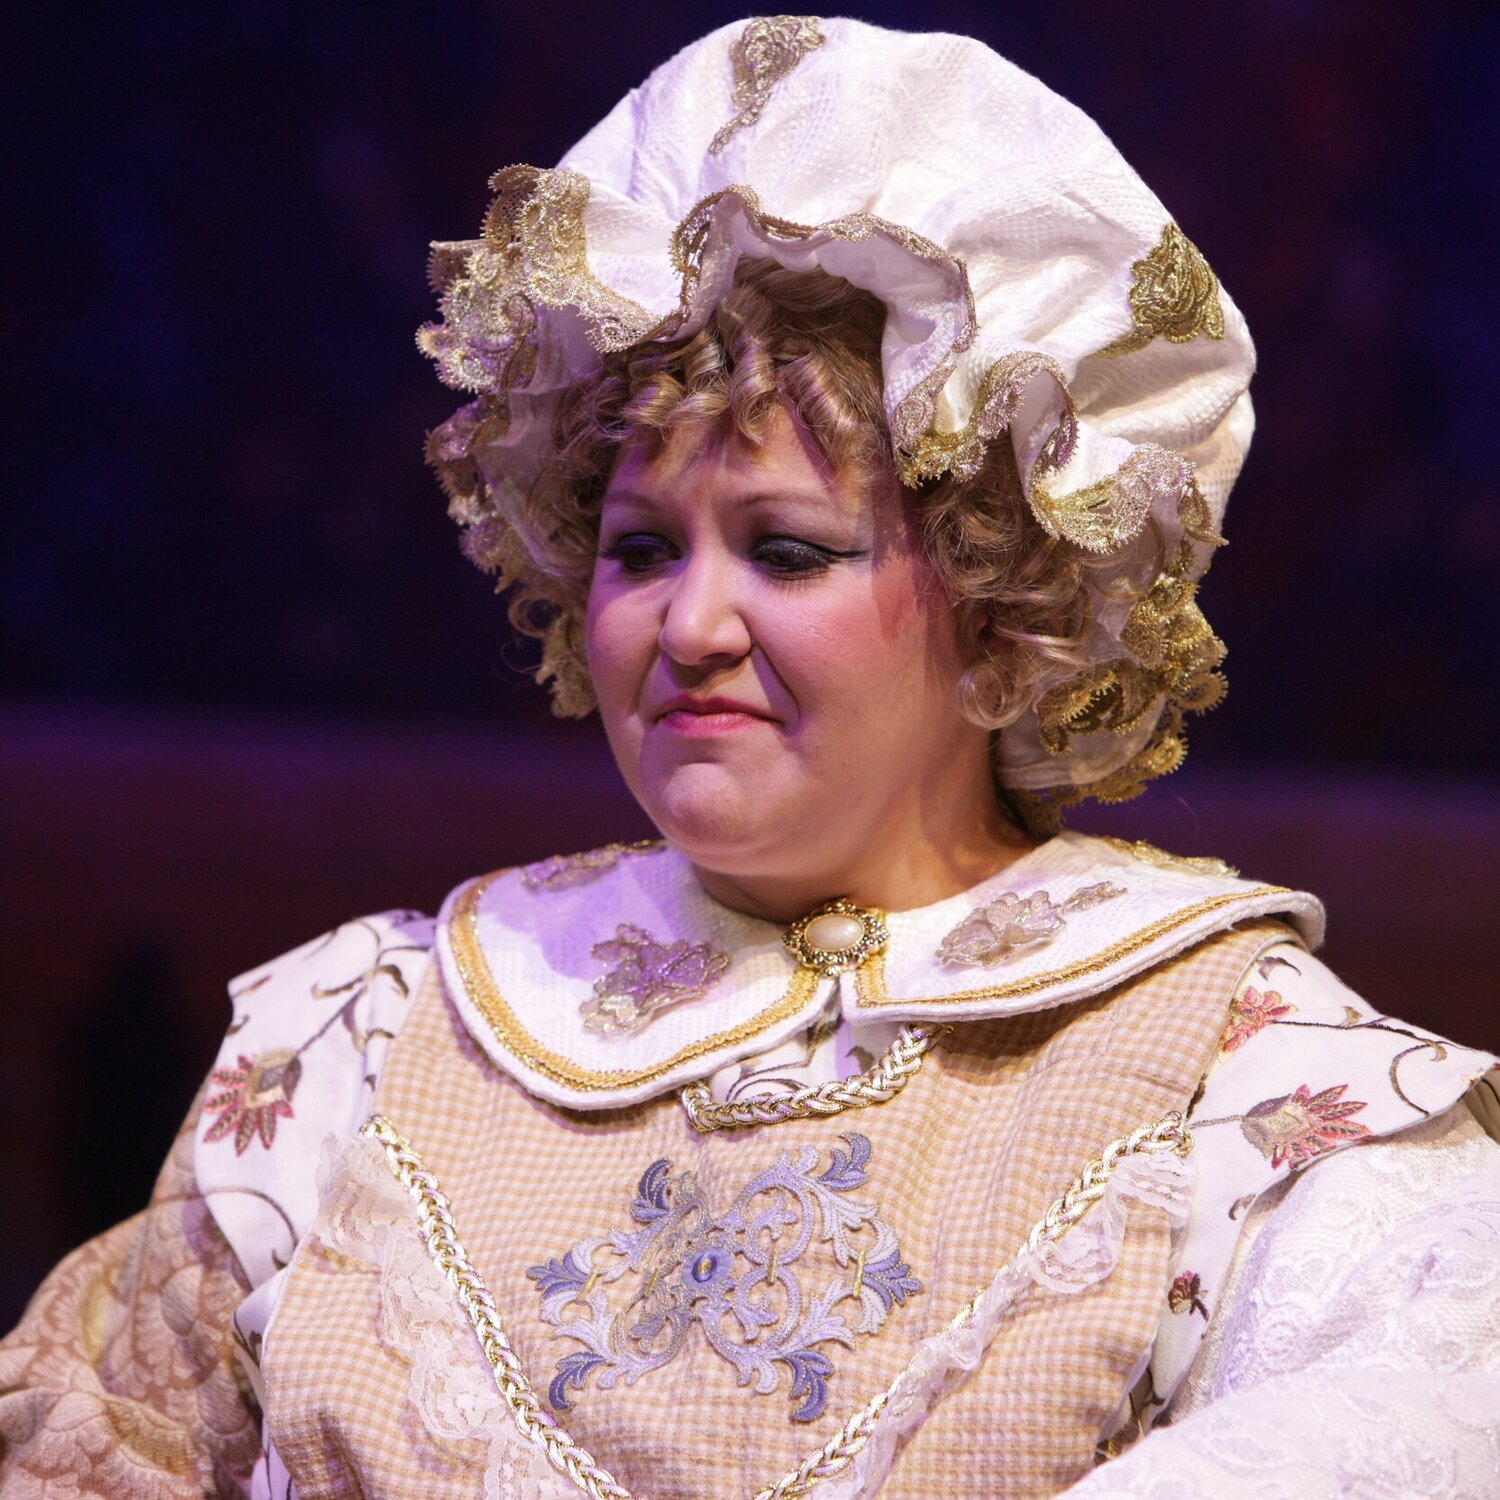 Mrs. Pott's Soft Hat- Beauty and the Beast- Music Theatre Wichita 2016  Costume Design by Tiia Torchia Lager. All designs by the seasonal staff of MTW. Photos courtesy of Christopher Clark and John Fritchman.